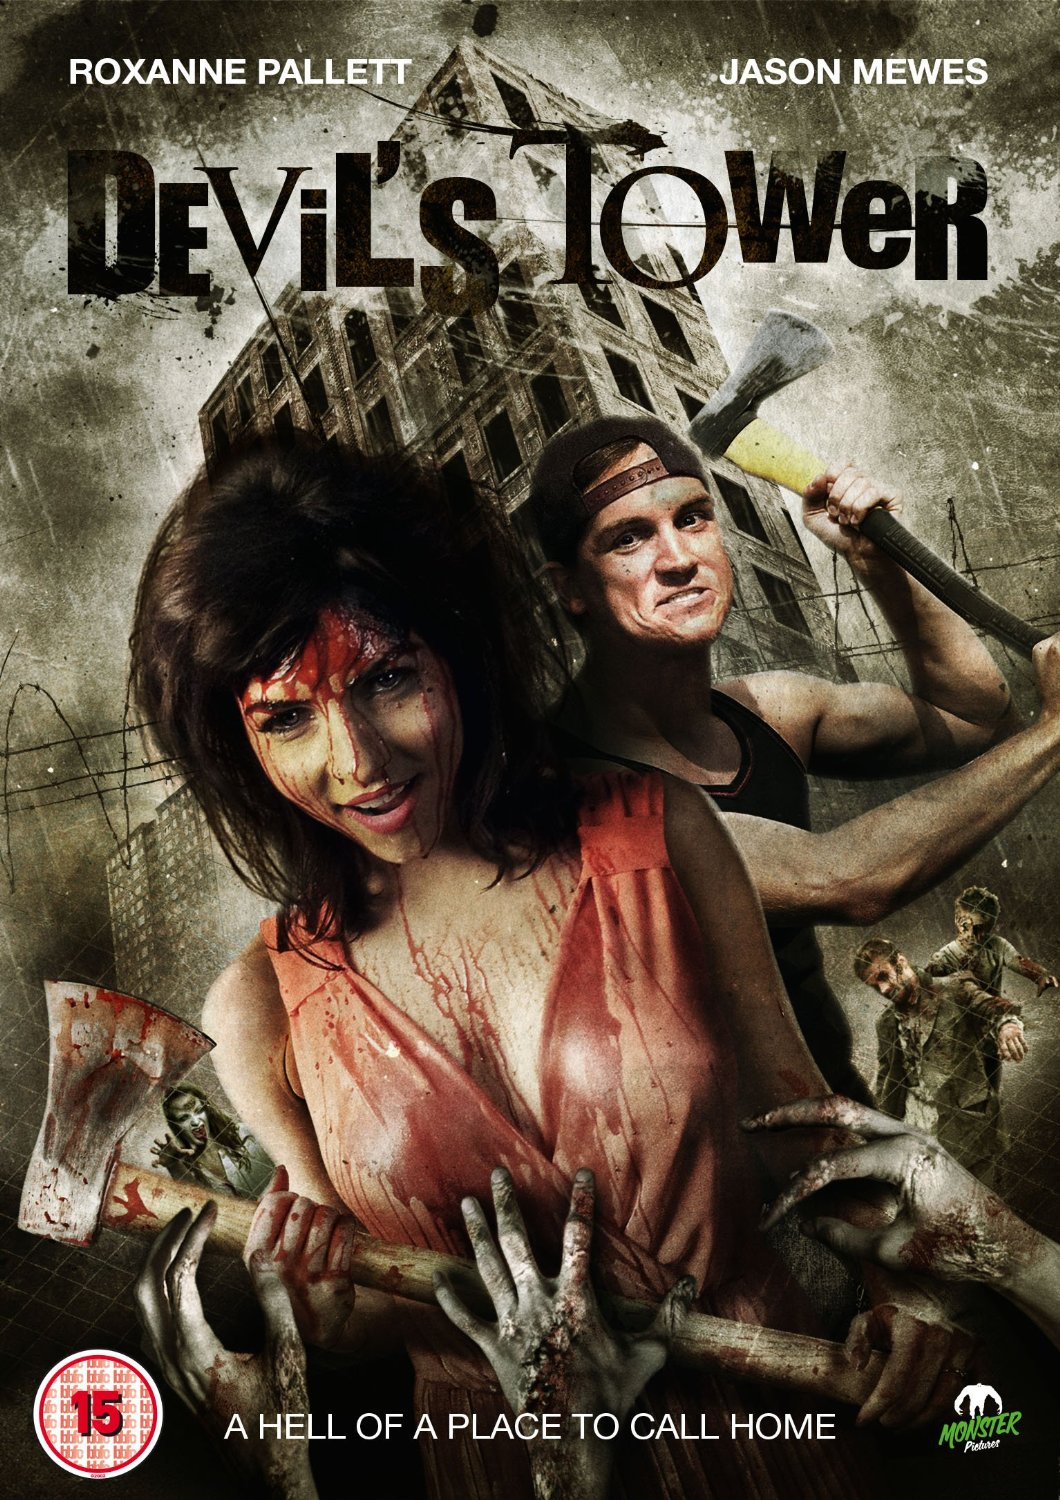 Devil's Tower UK DVD Review